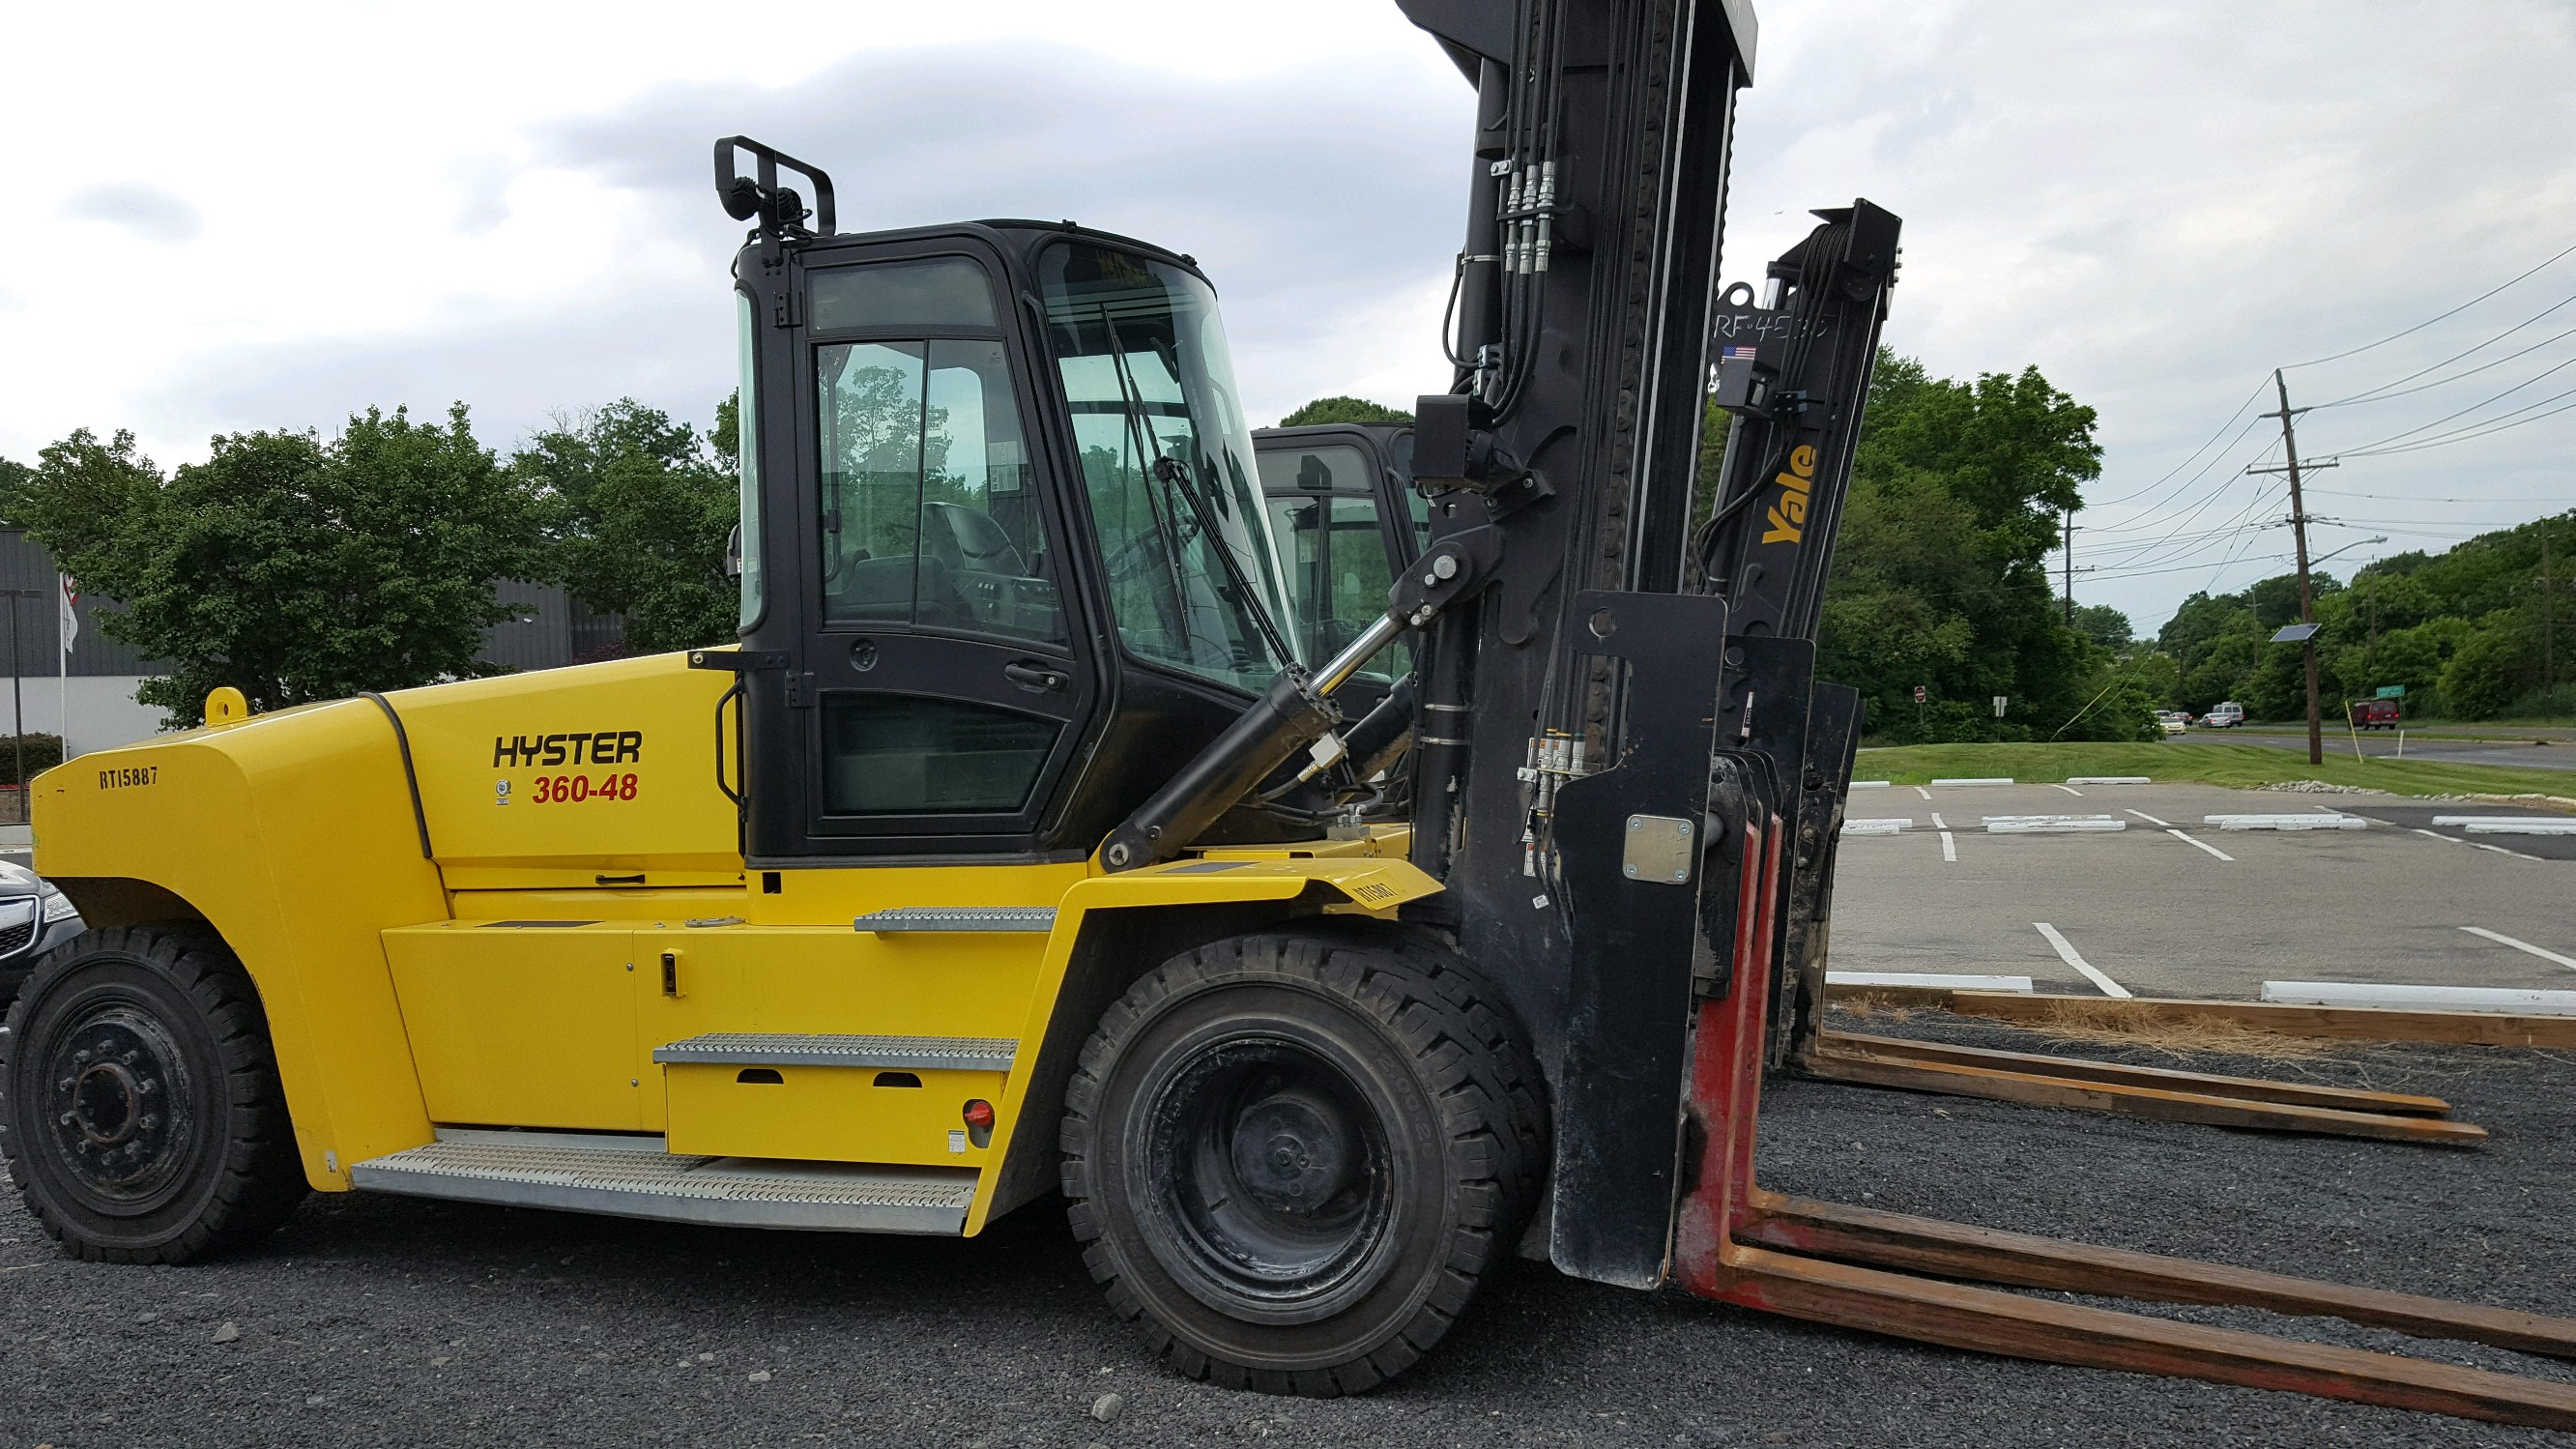 Similar Used Equipment - 2016 Hyster H360-48HD2